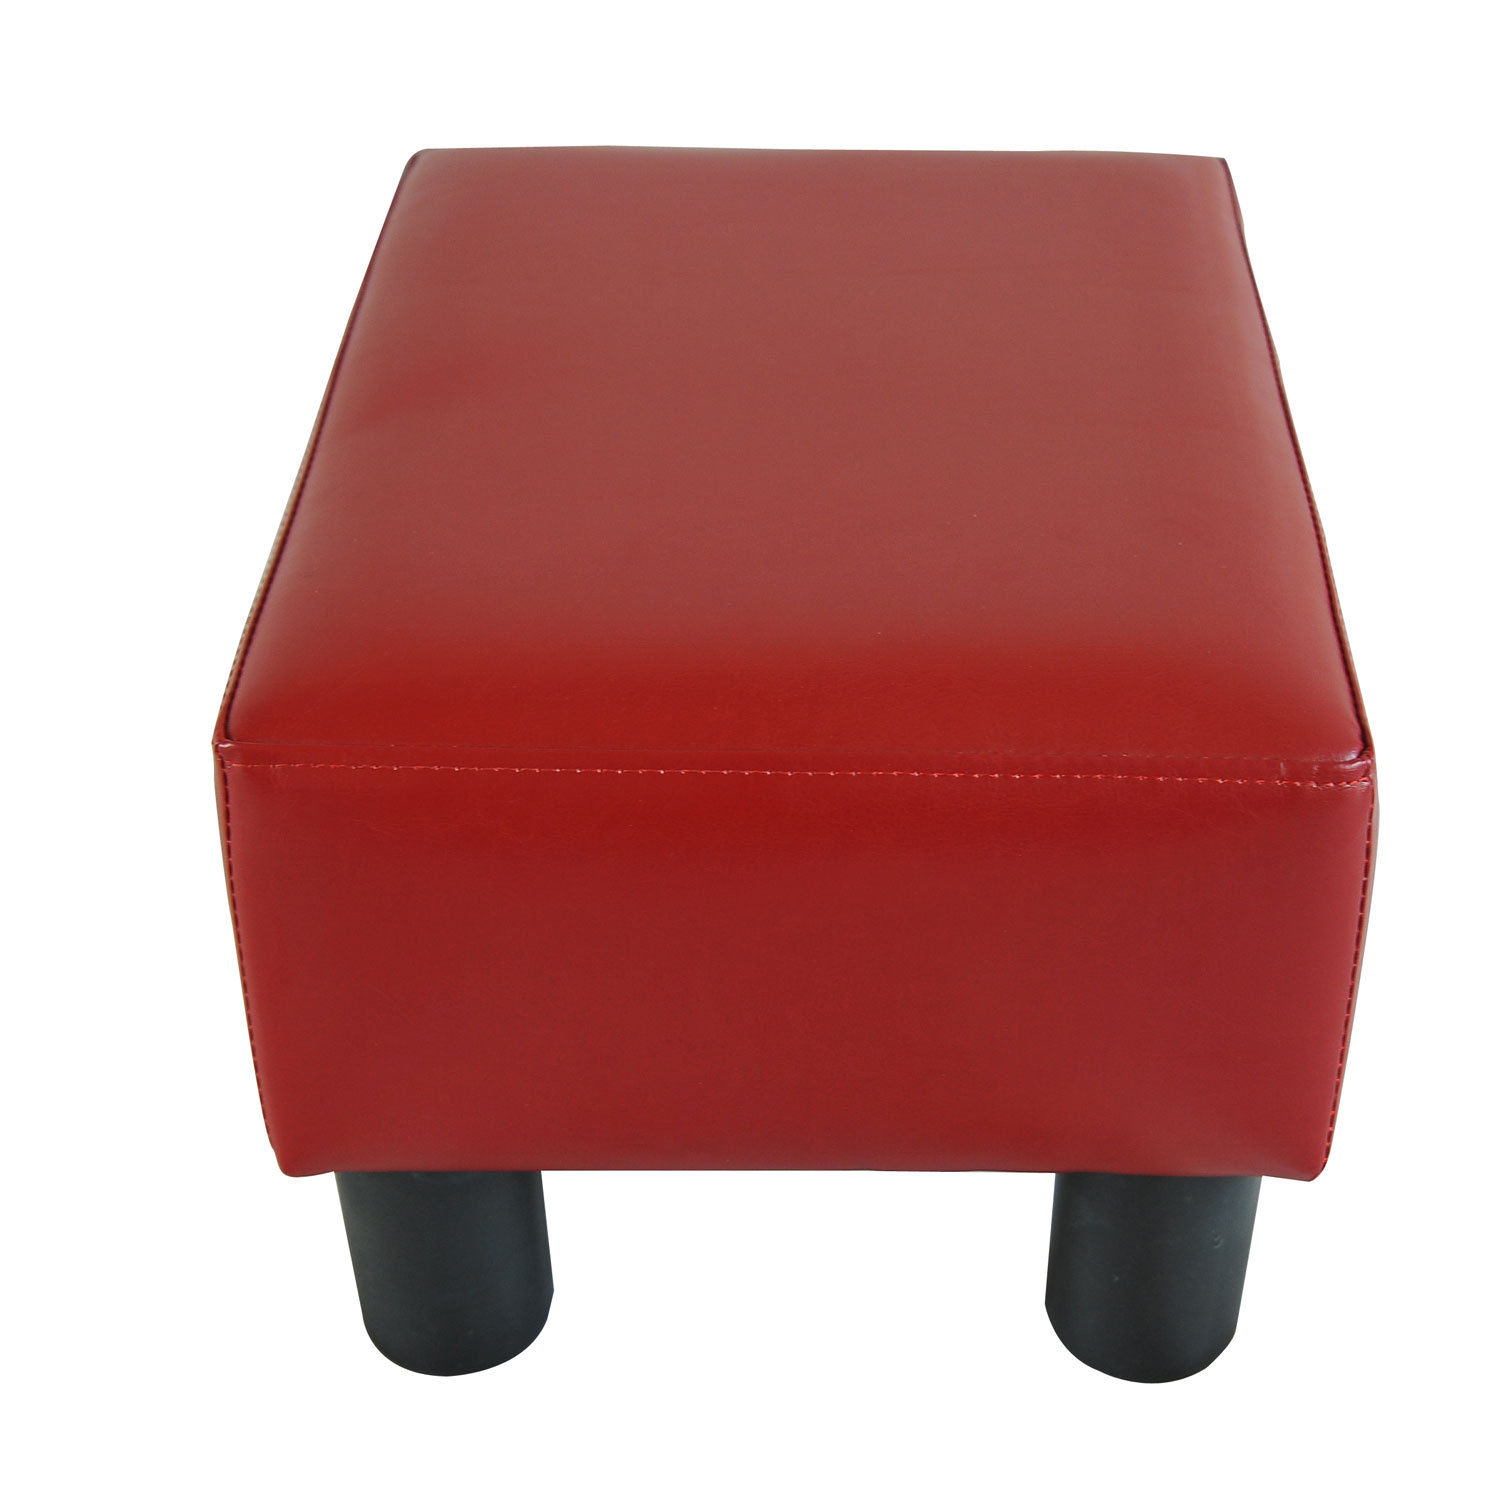 Modern Faux Leather Ottoman Footrest Stool Foot Rest Small